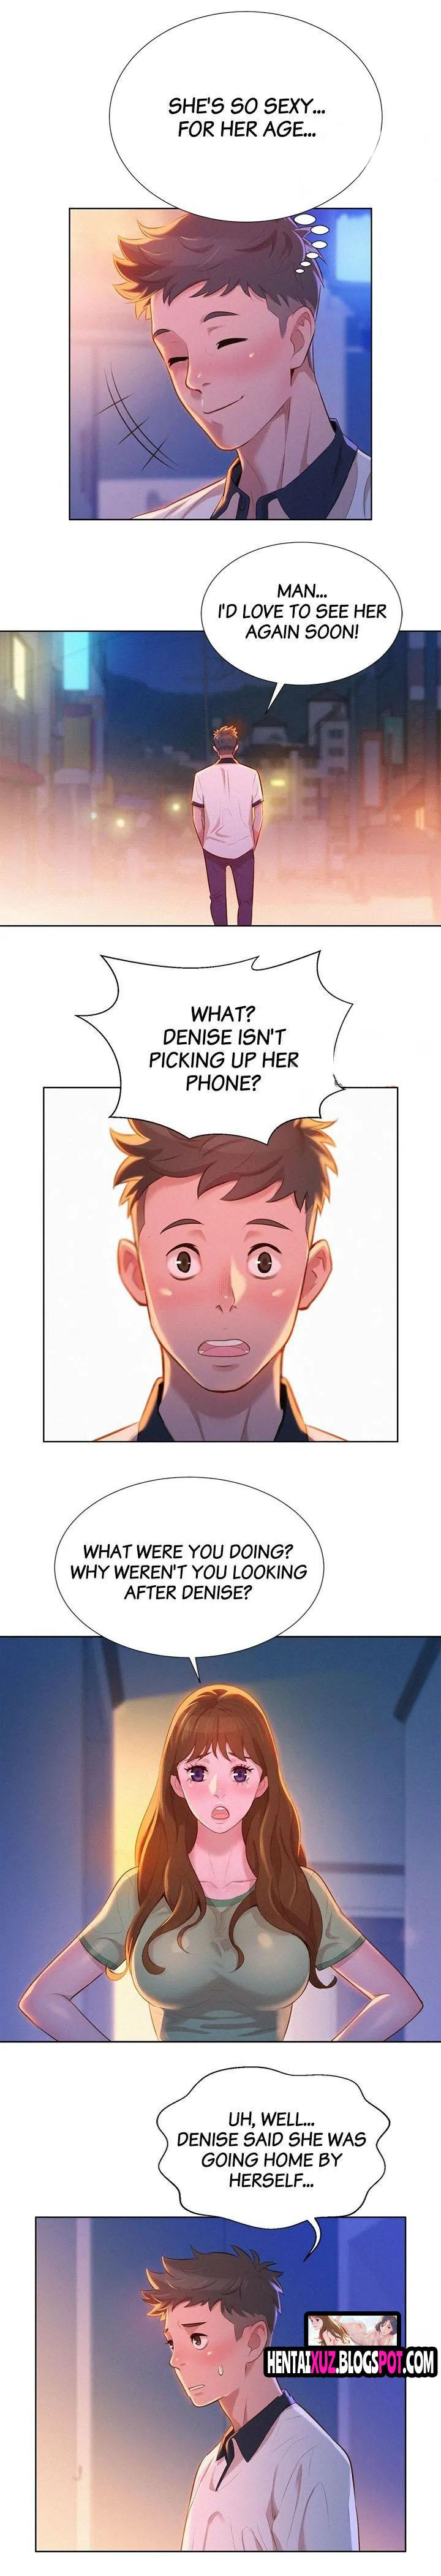 What do you Take me For? Ch.10/? 117